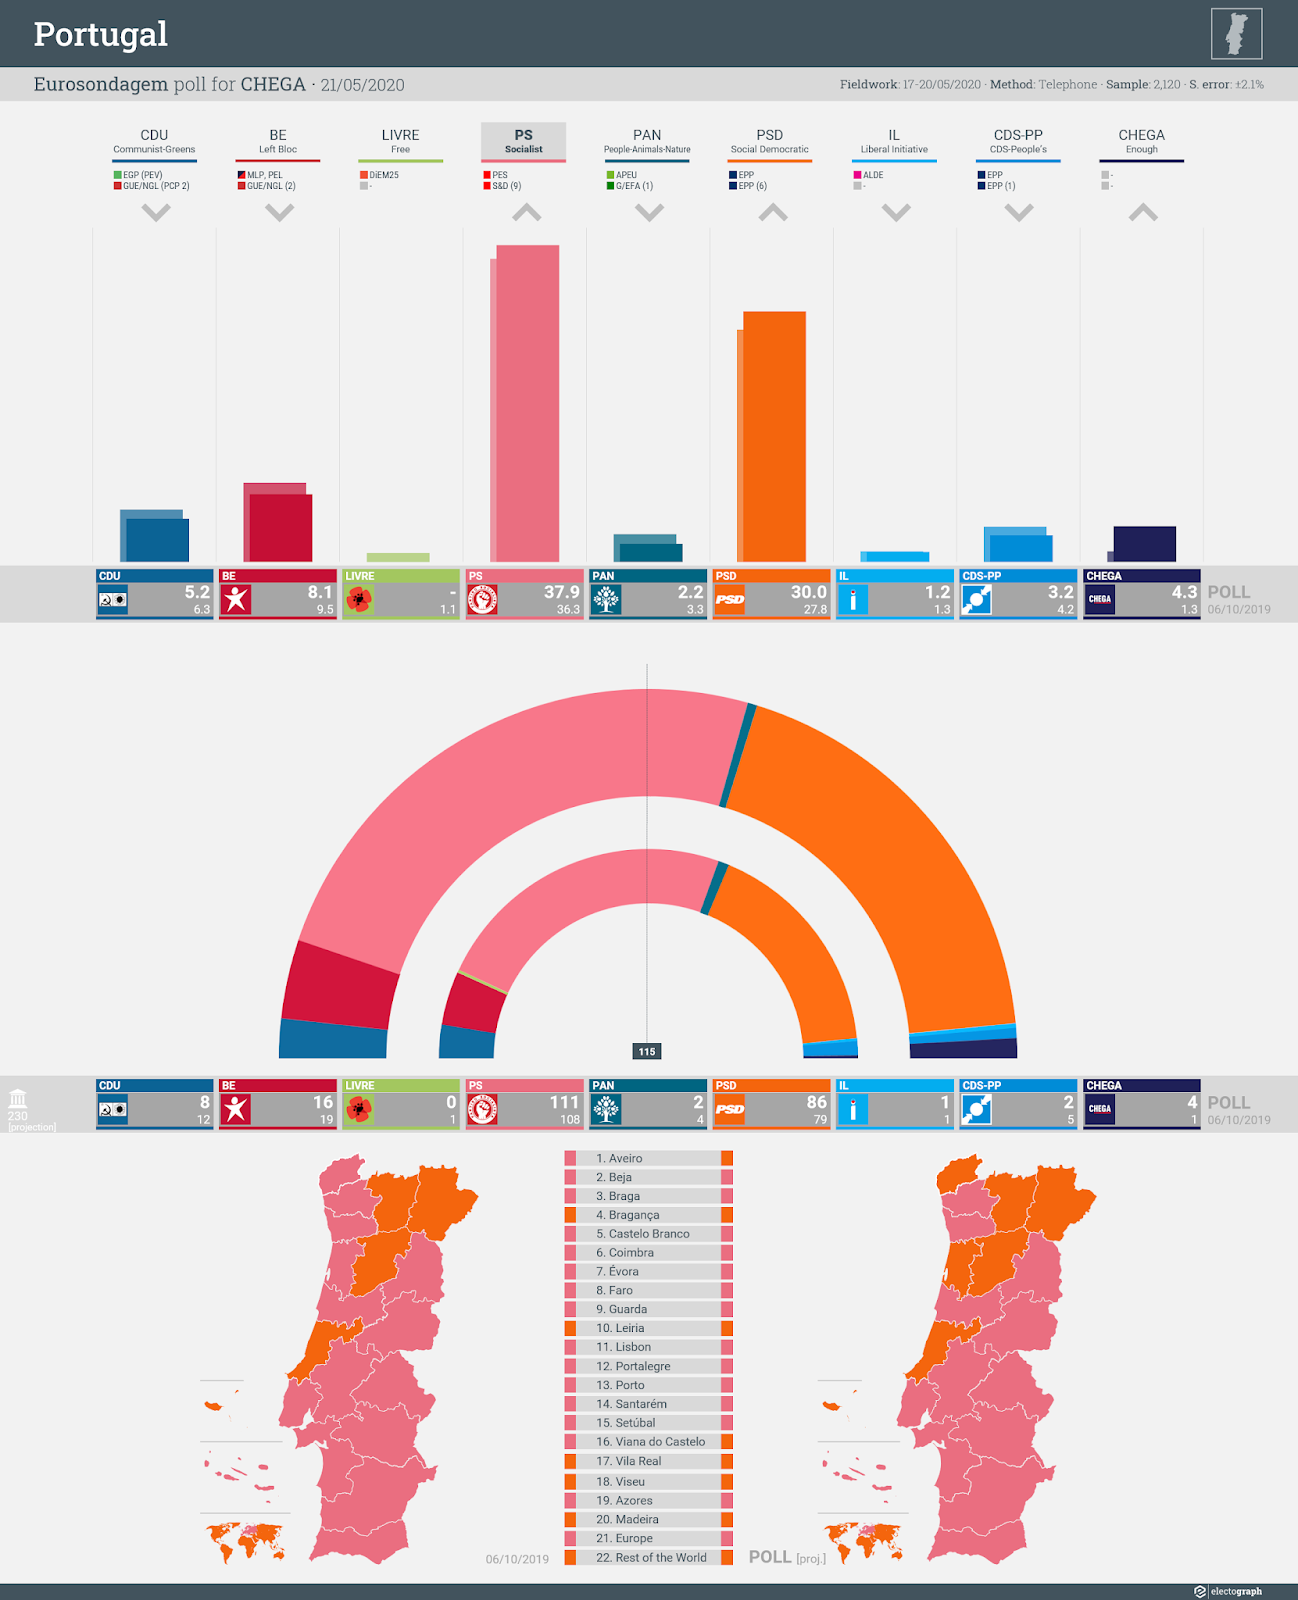 PORTUGAL: Eurosondagem poll chart for CHEGA, 21 May 2020